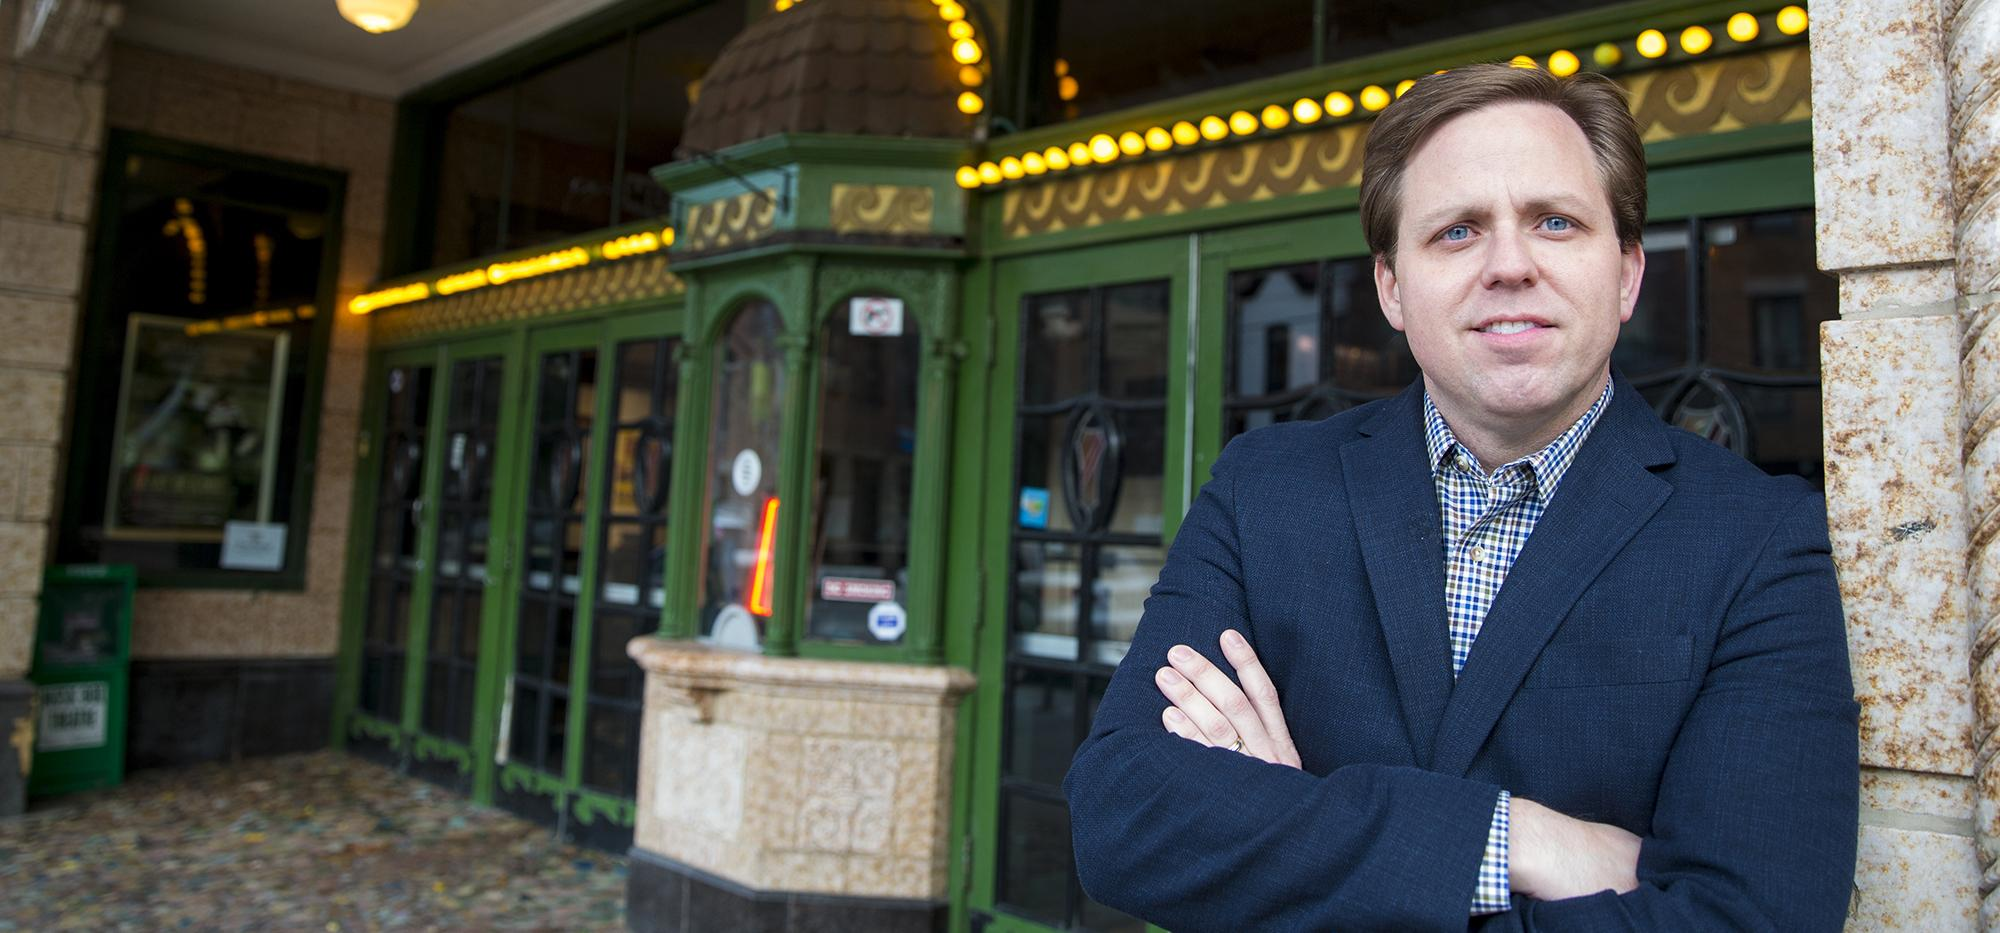 Adam Kempenaar in front of the Music Box Theater in Chicago